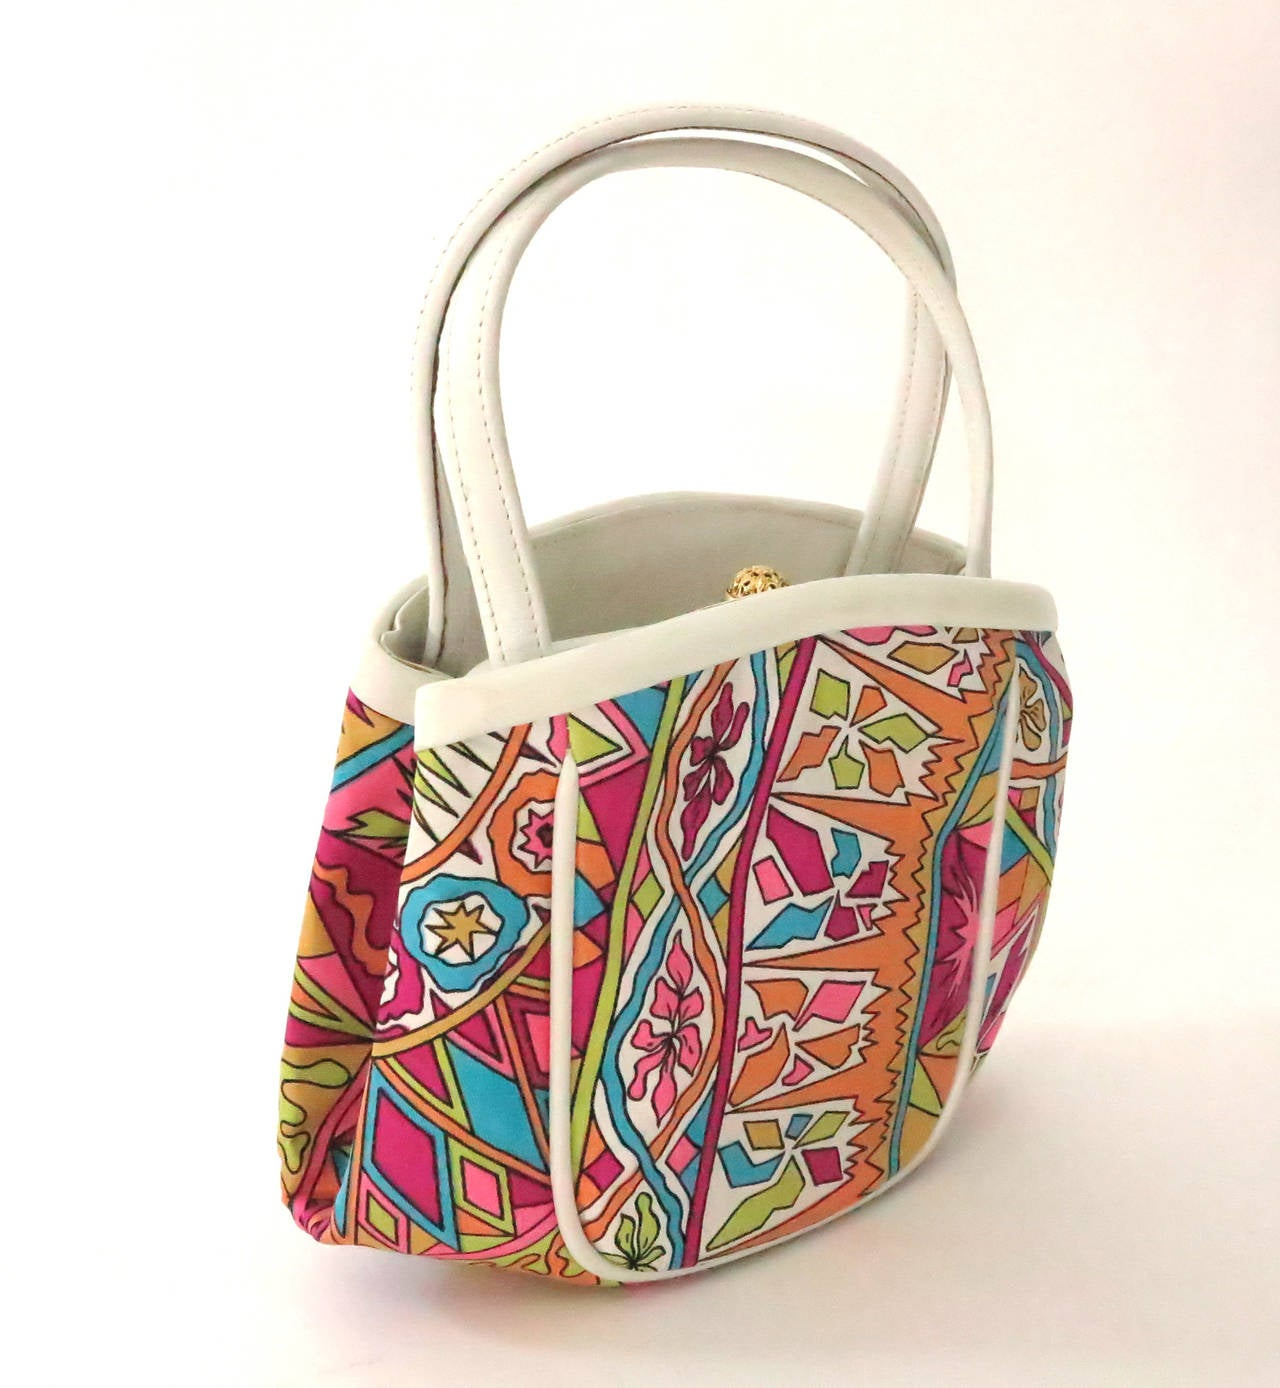 Bright print silk hand bag designed by Emilio Pucci and made by Jana...Cream leather double handles, trims and partial lining...The bag has a center compartment that closes with a gold filigree snap clasp, there are open compartments on either